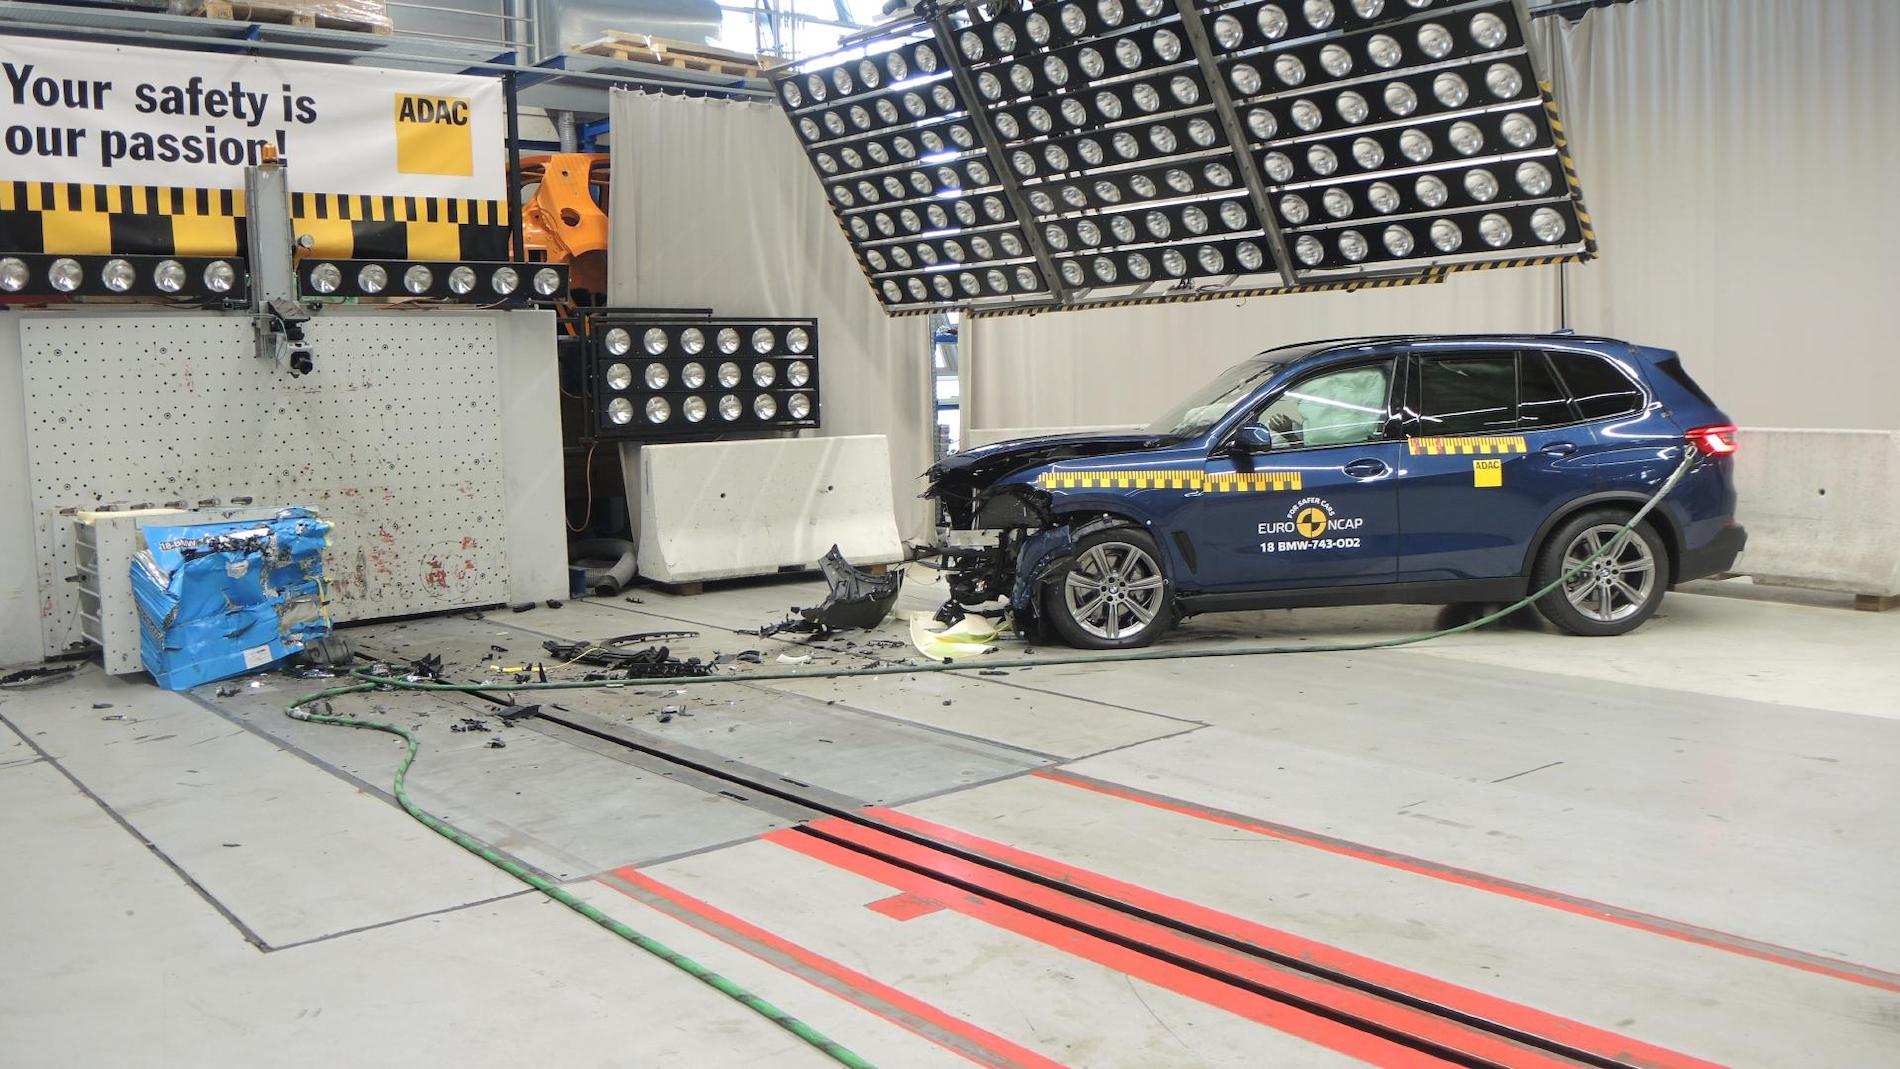 2019 Bmw X5 G05 Scores Full 5 Star Safety Rating In Euro Ncap